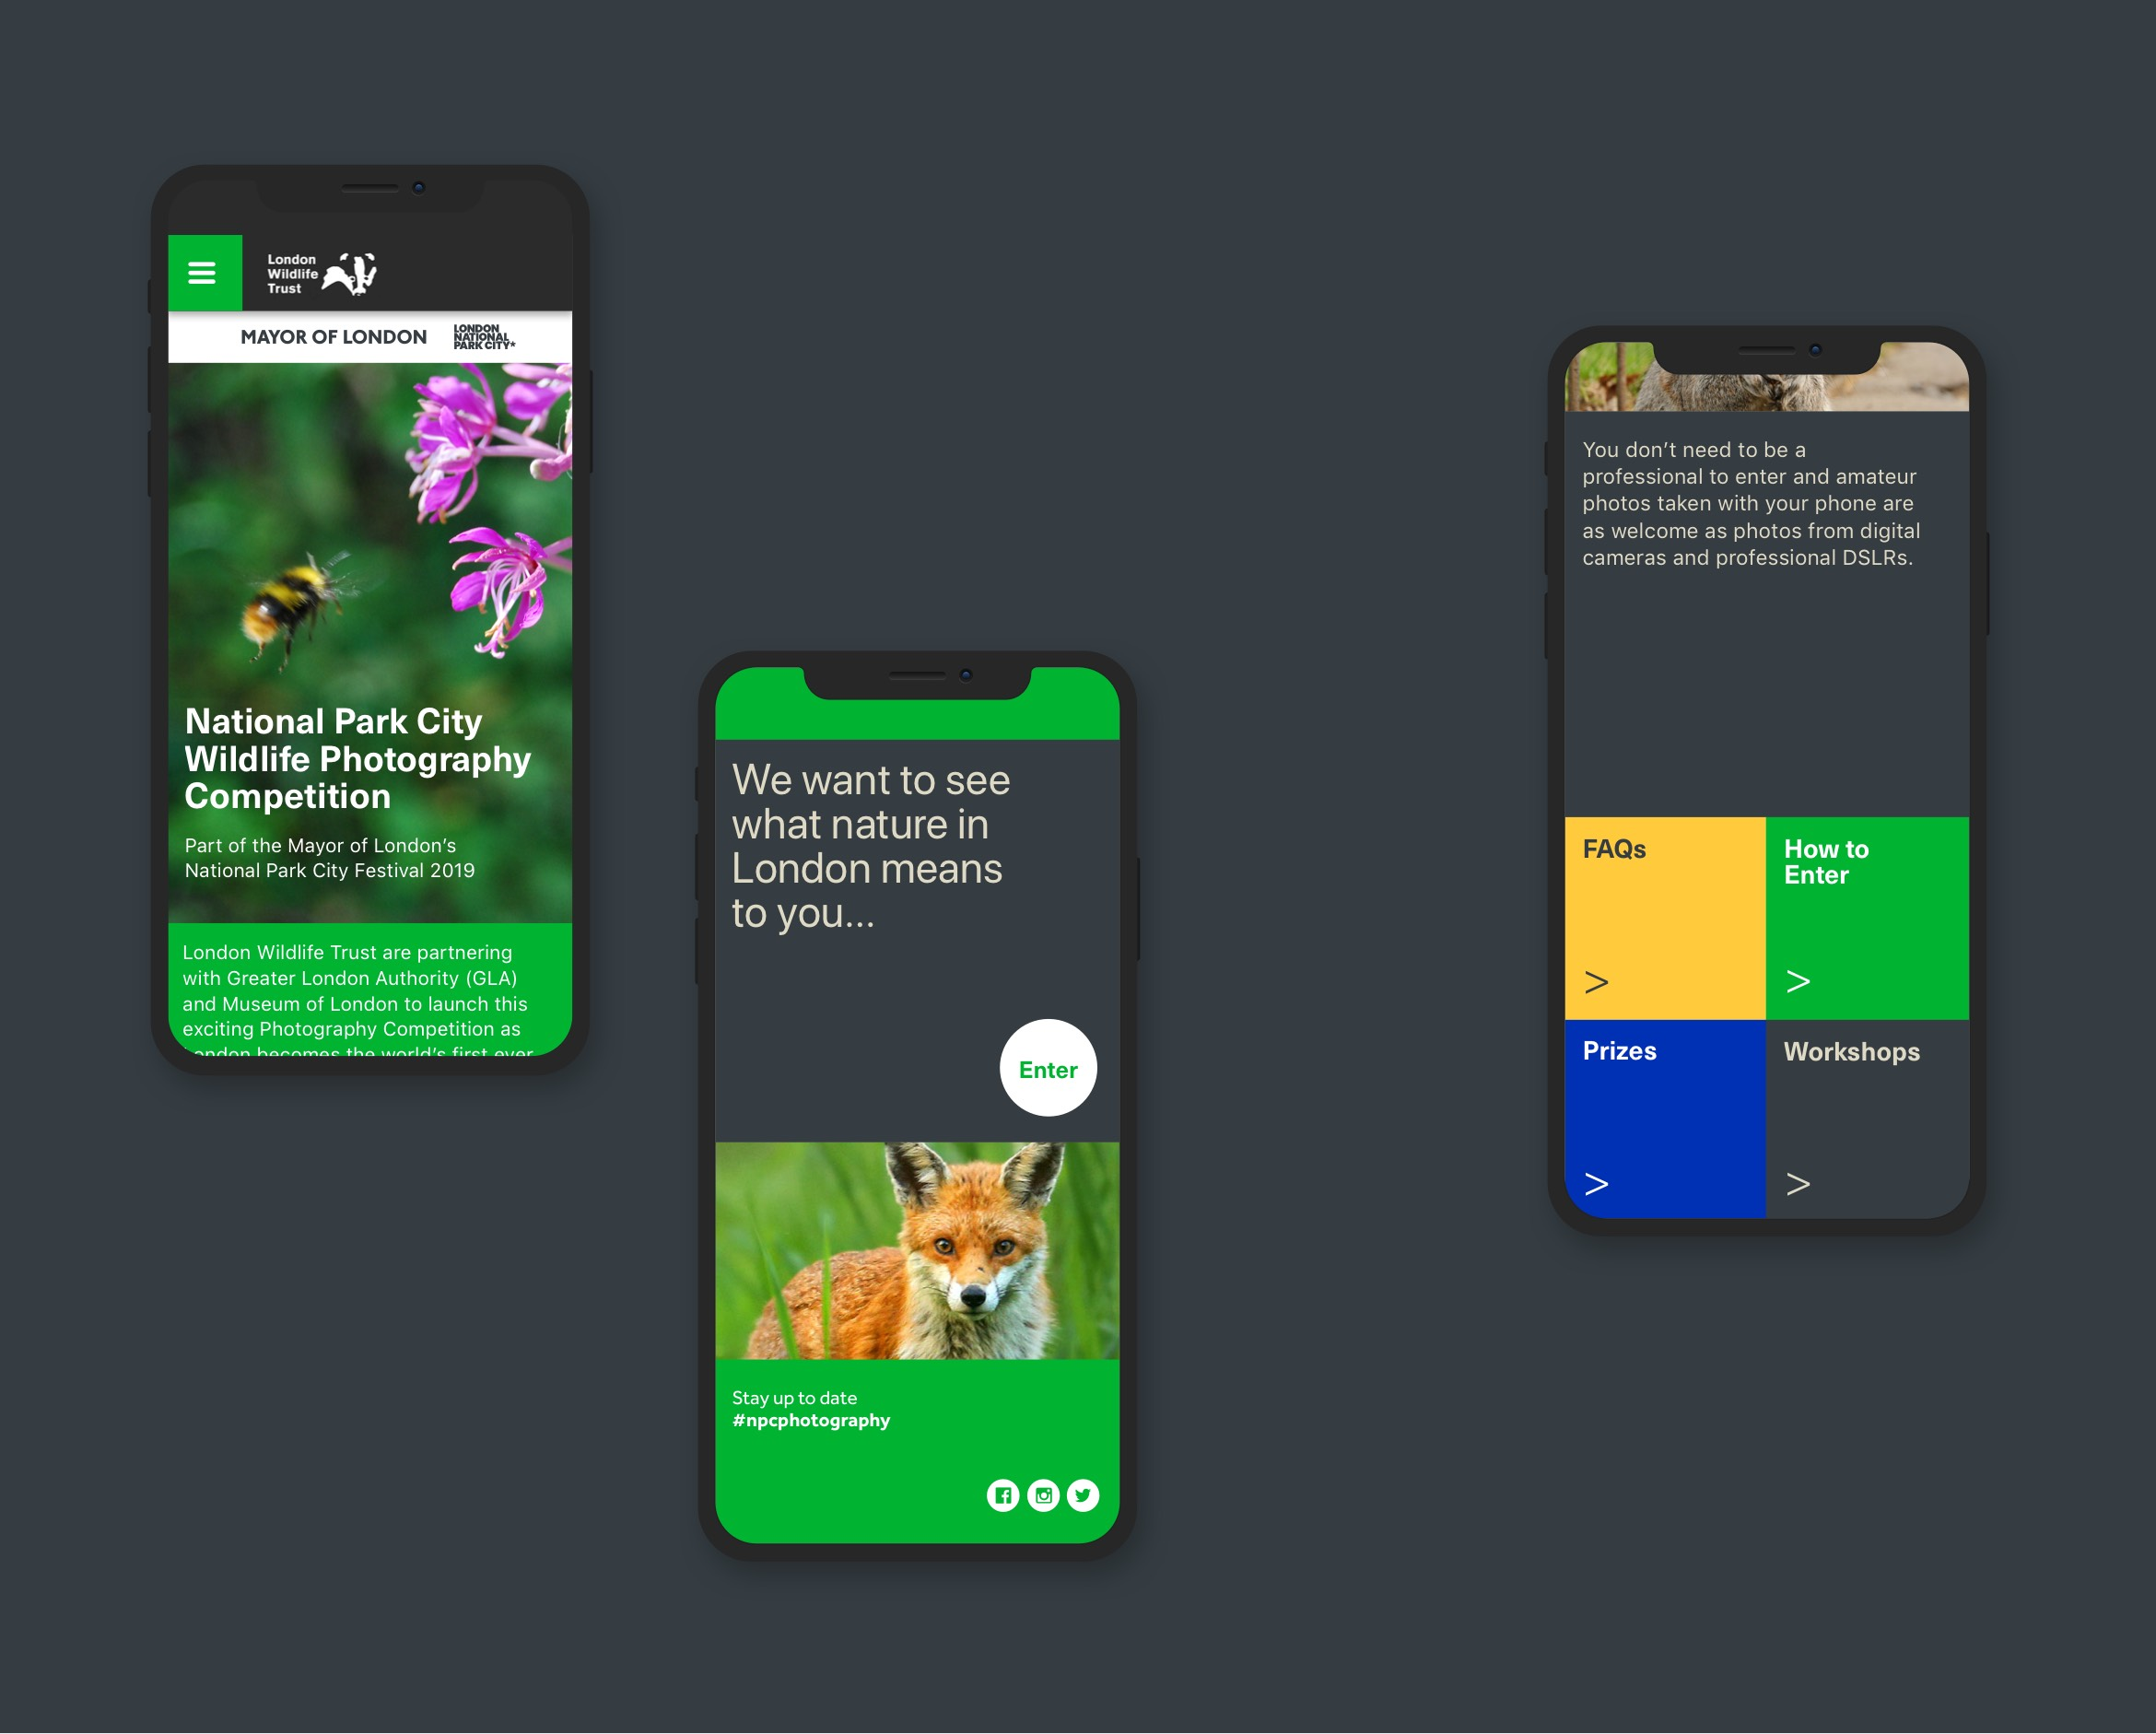 London Wildlife Trust website design displayed in three black mobile phones. Nature pictures and text